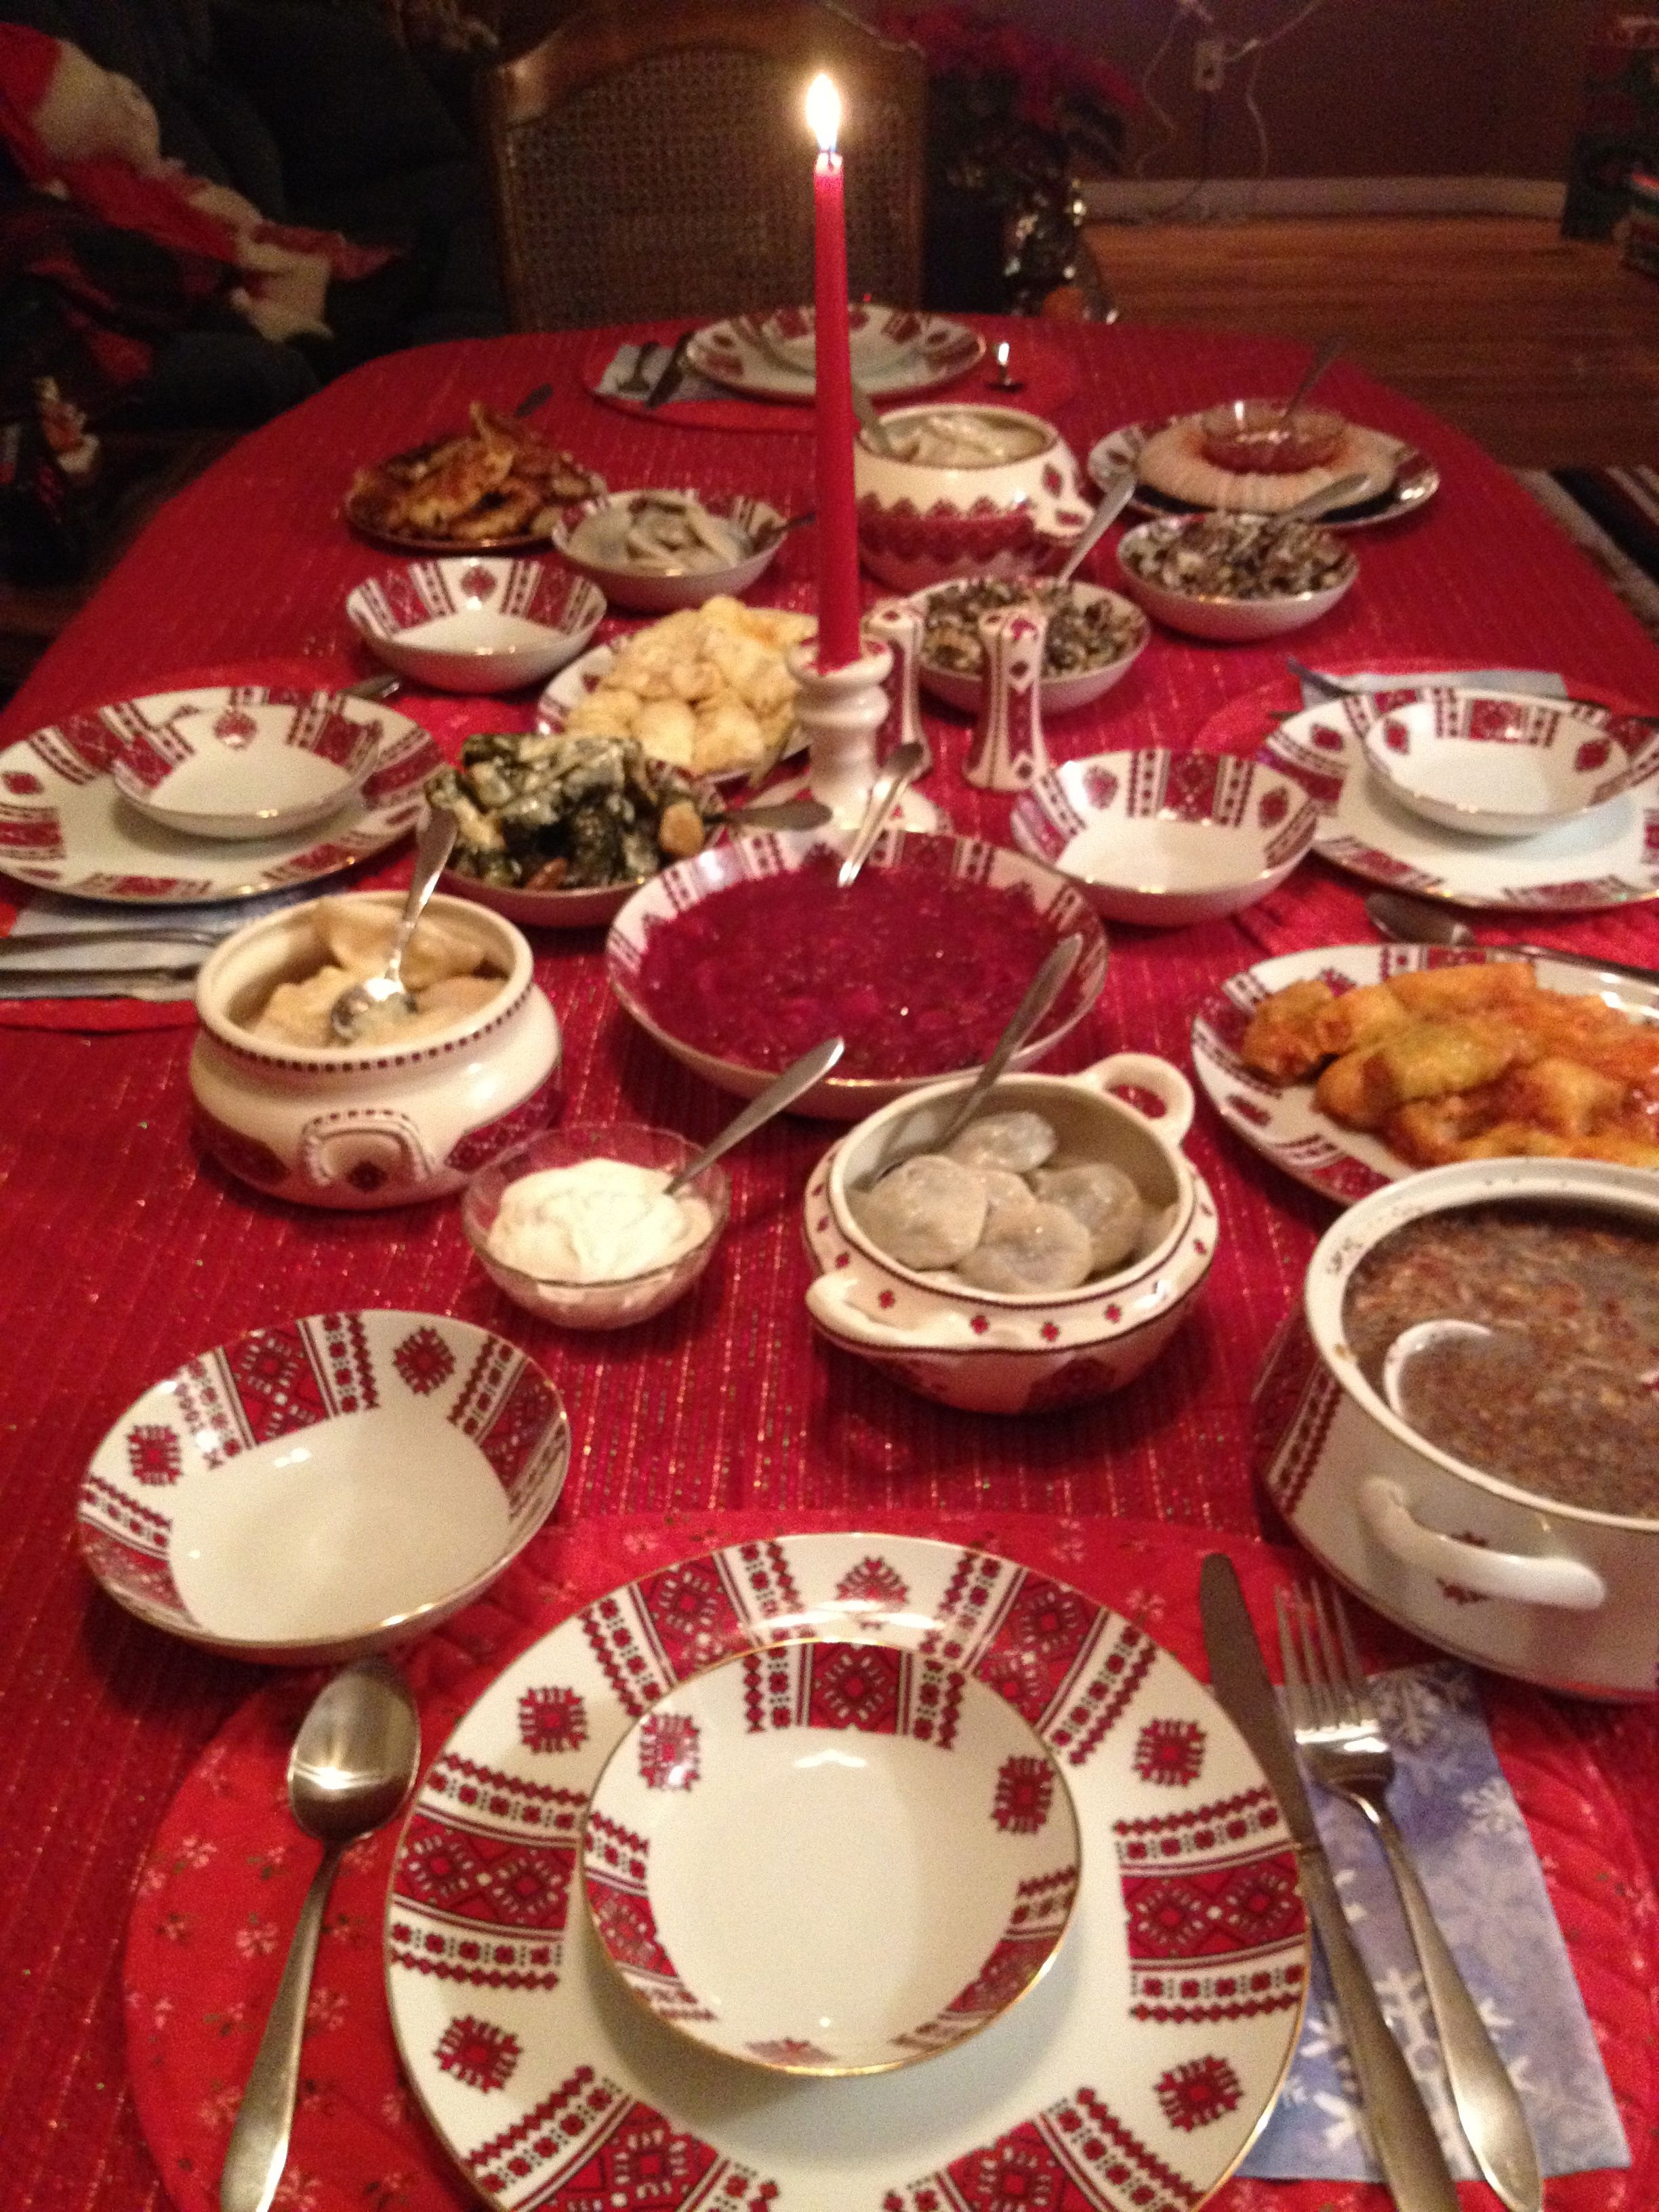 12 Ukrainian Dishes for Christmas Eve Recipes (Plus bonus